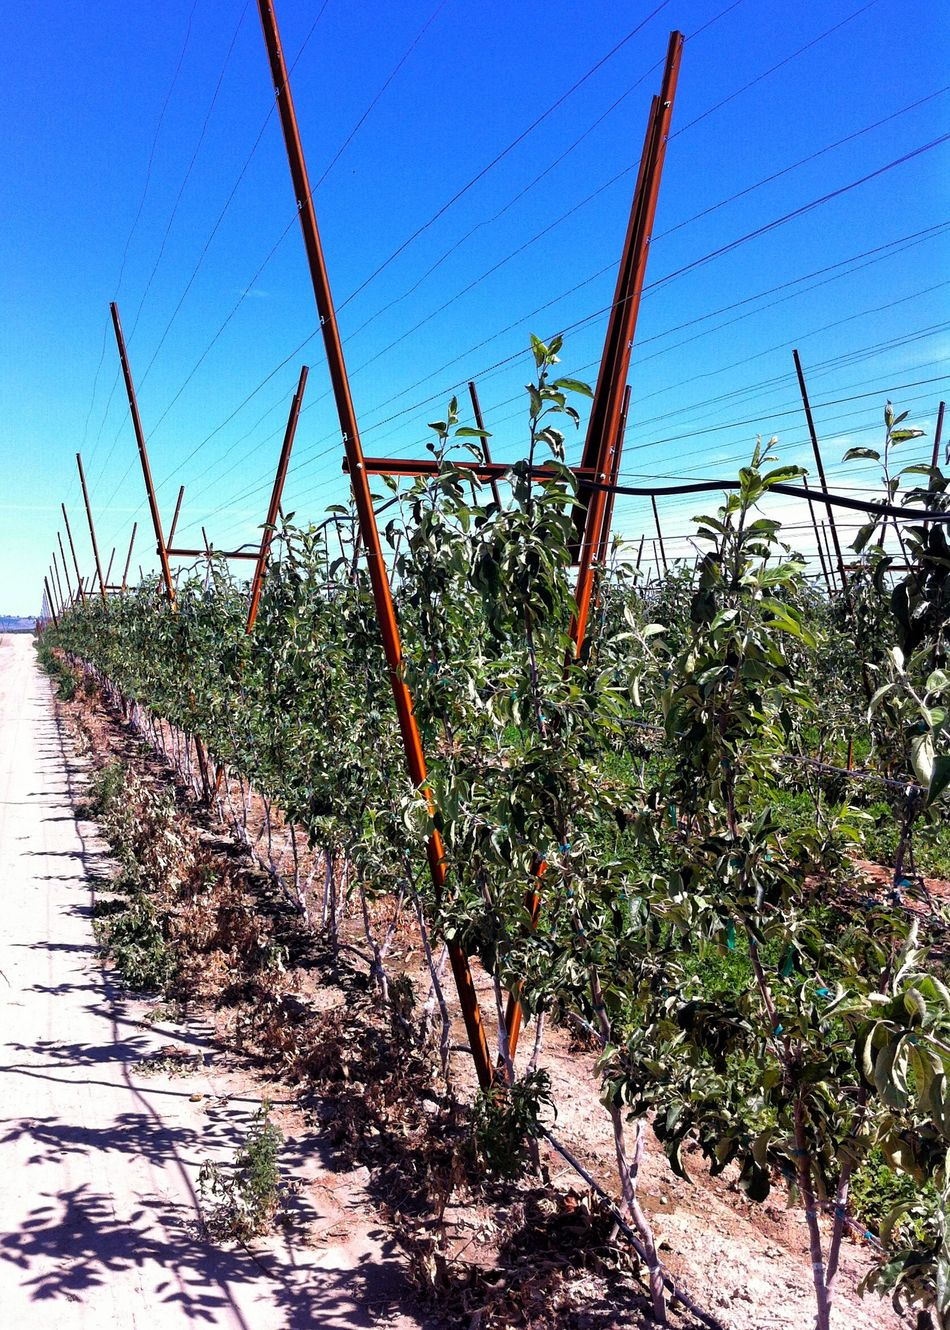 New 'high-density' apple tree production system. Apple Tree Crop Production Commercial Agriculture Training Plant Agriculture Fruit Production Farm New Technology Agricultural Technology Growth Nature Feed The World Outdoors Agriculture Efficiency No People Orchard Apple Orchard New